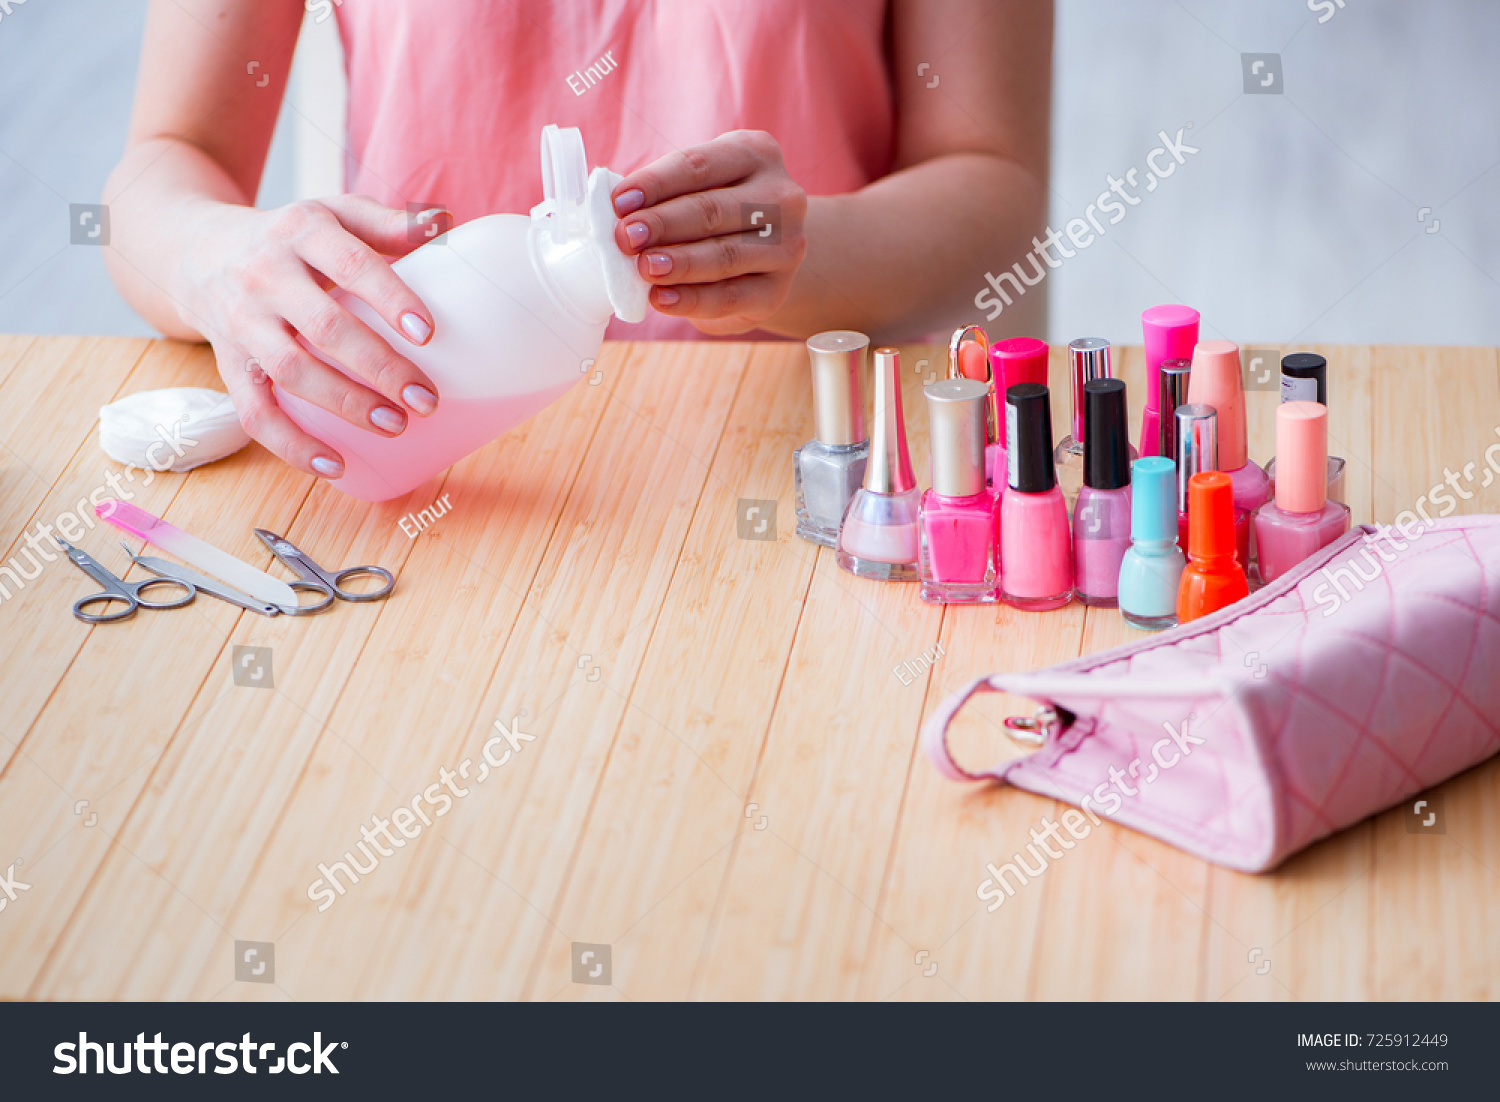 Beauty Products Nail Care Tools Pedicure Stock Photo (Royalty Free ...